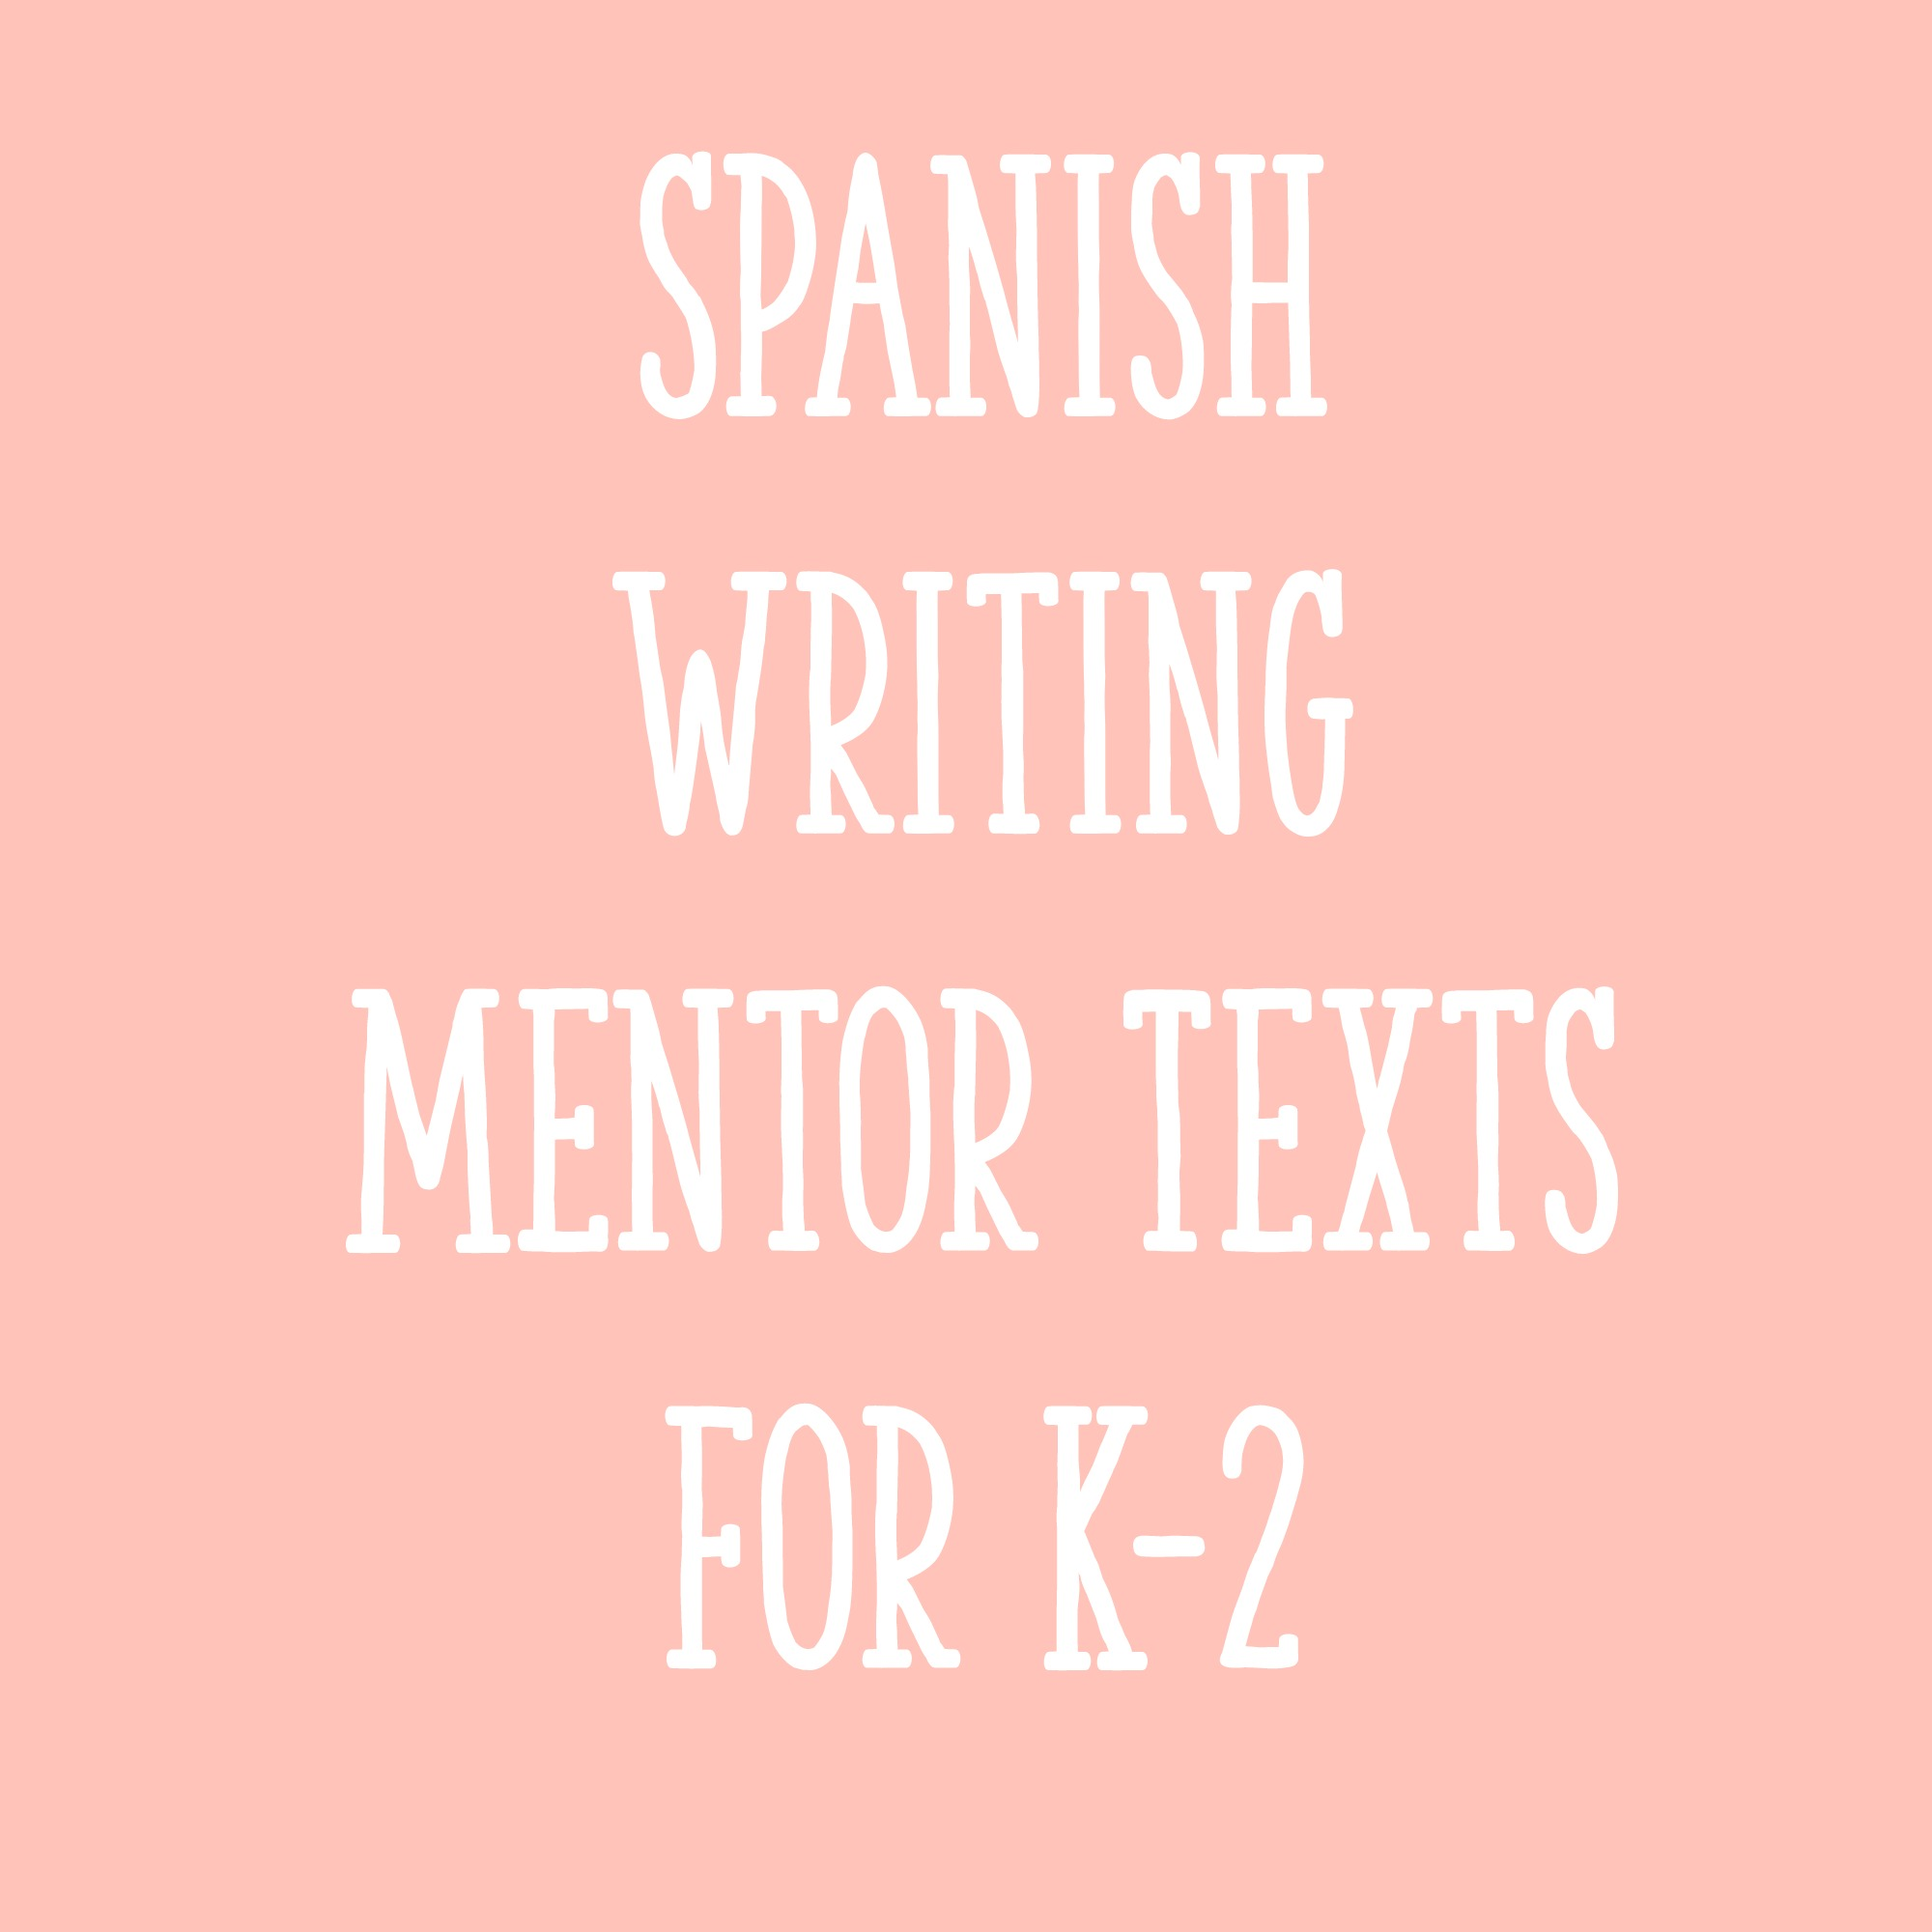 spanish education at the primary level essay To get to know your students on a more personal level i do not place a value judgment on their the class as a whole to engage the class in a discussion in spanish this activity focuses on the synthesis of students' interest and can make for excellent discussion and essay writing adolescents 1 stress and its effects on.